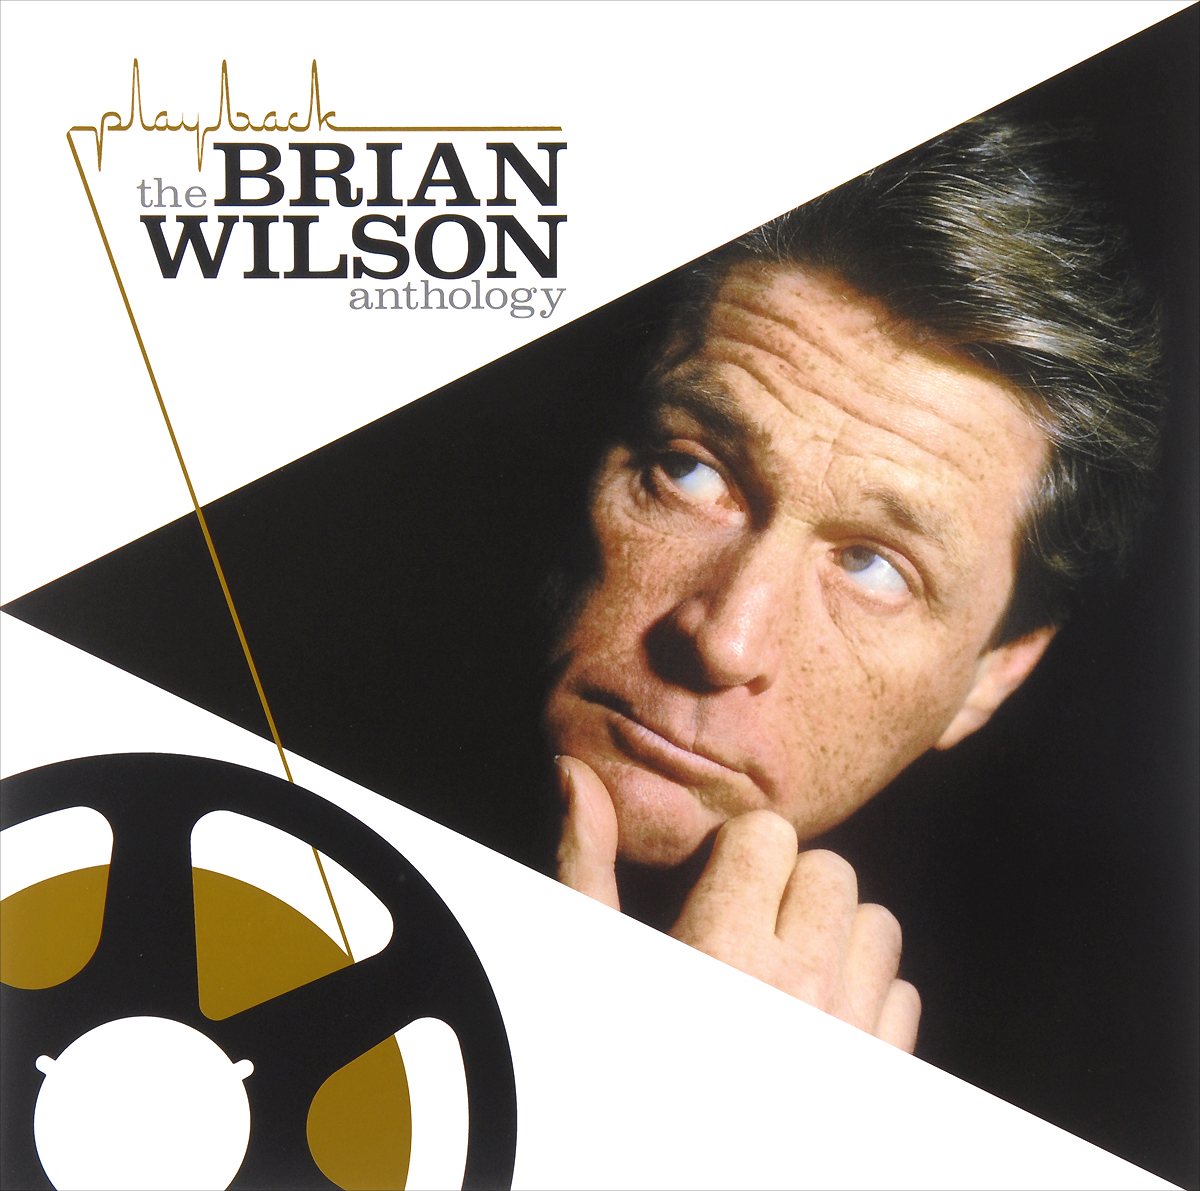 лучшая цена Брайан Уилсон Brian Wilson. Playback. The Brian Wilson Anthology (2 LP)